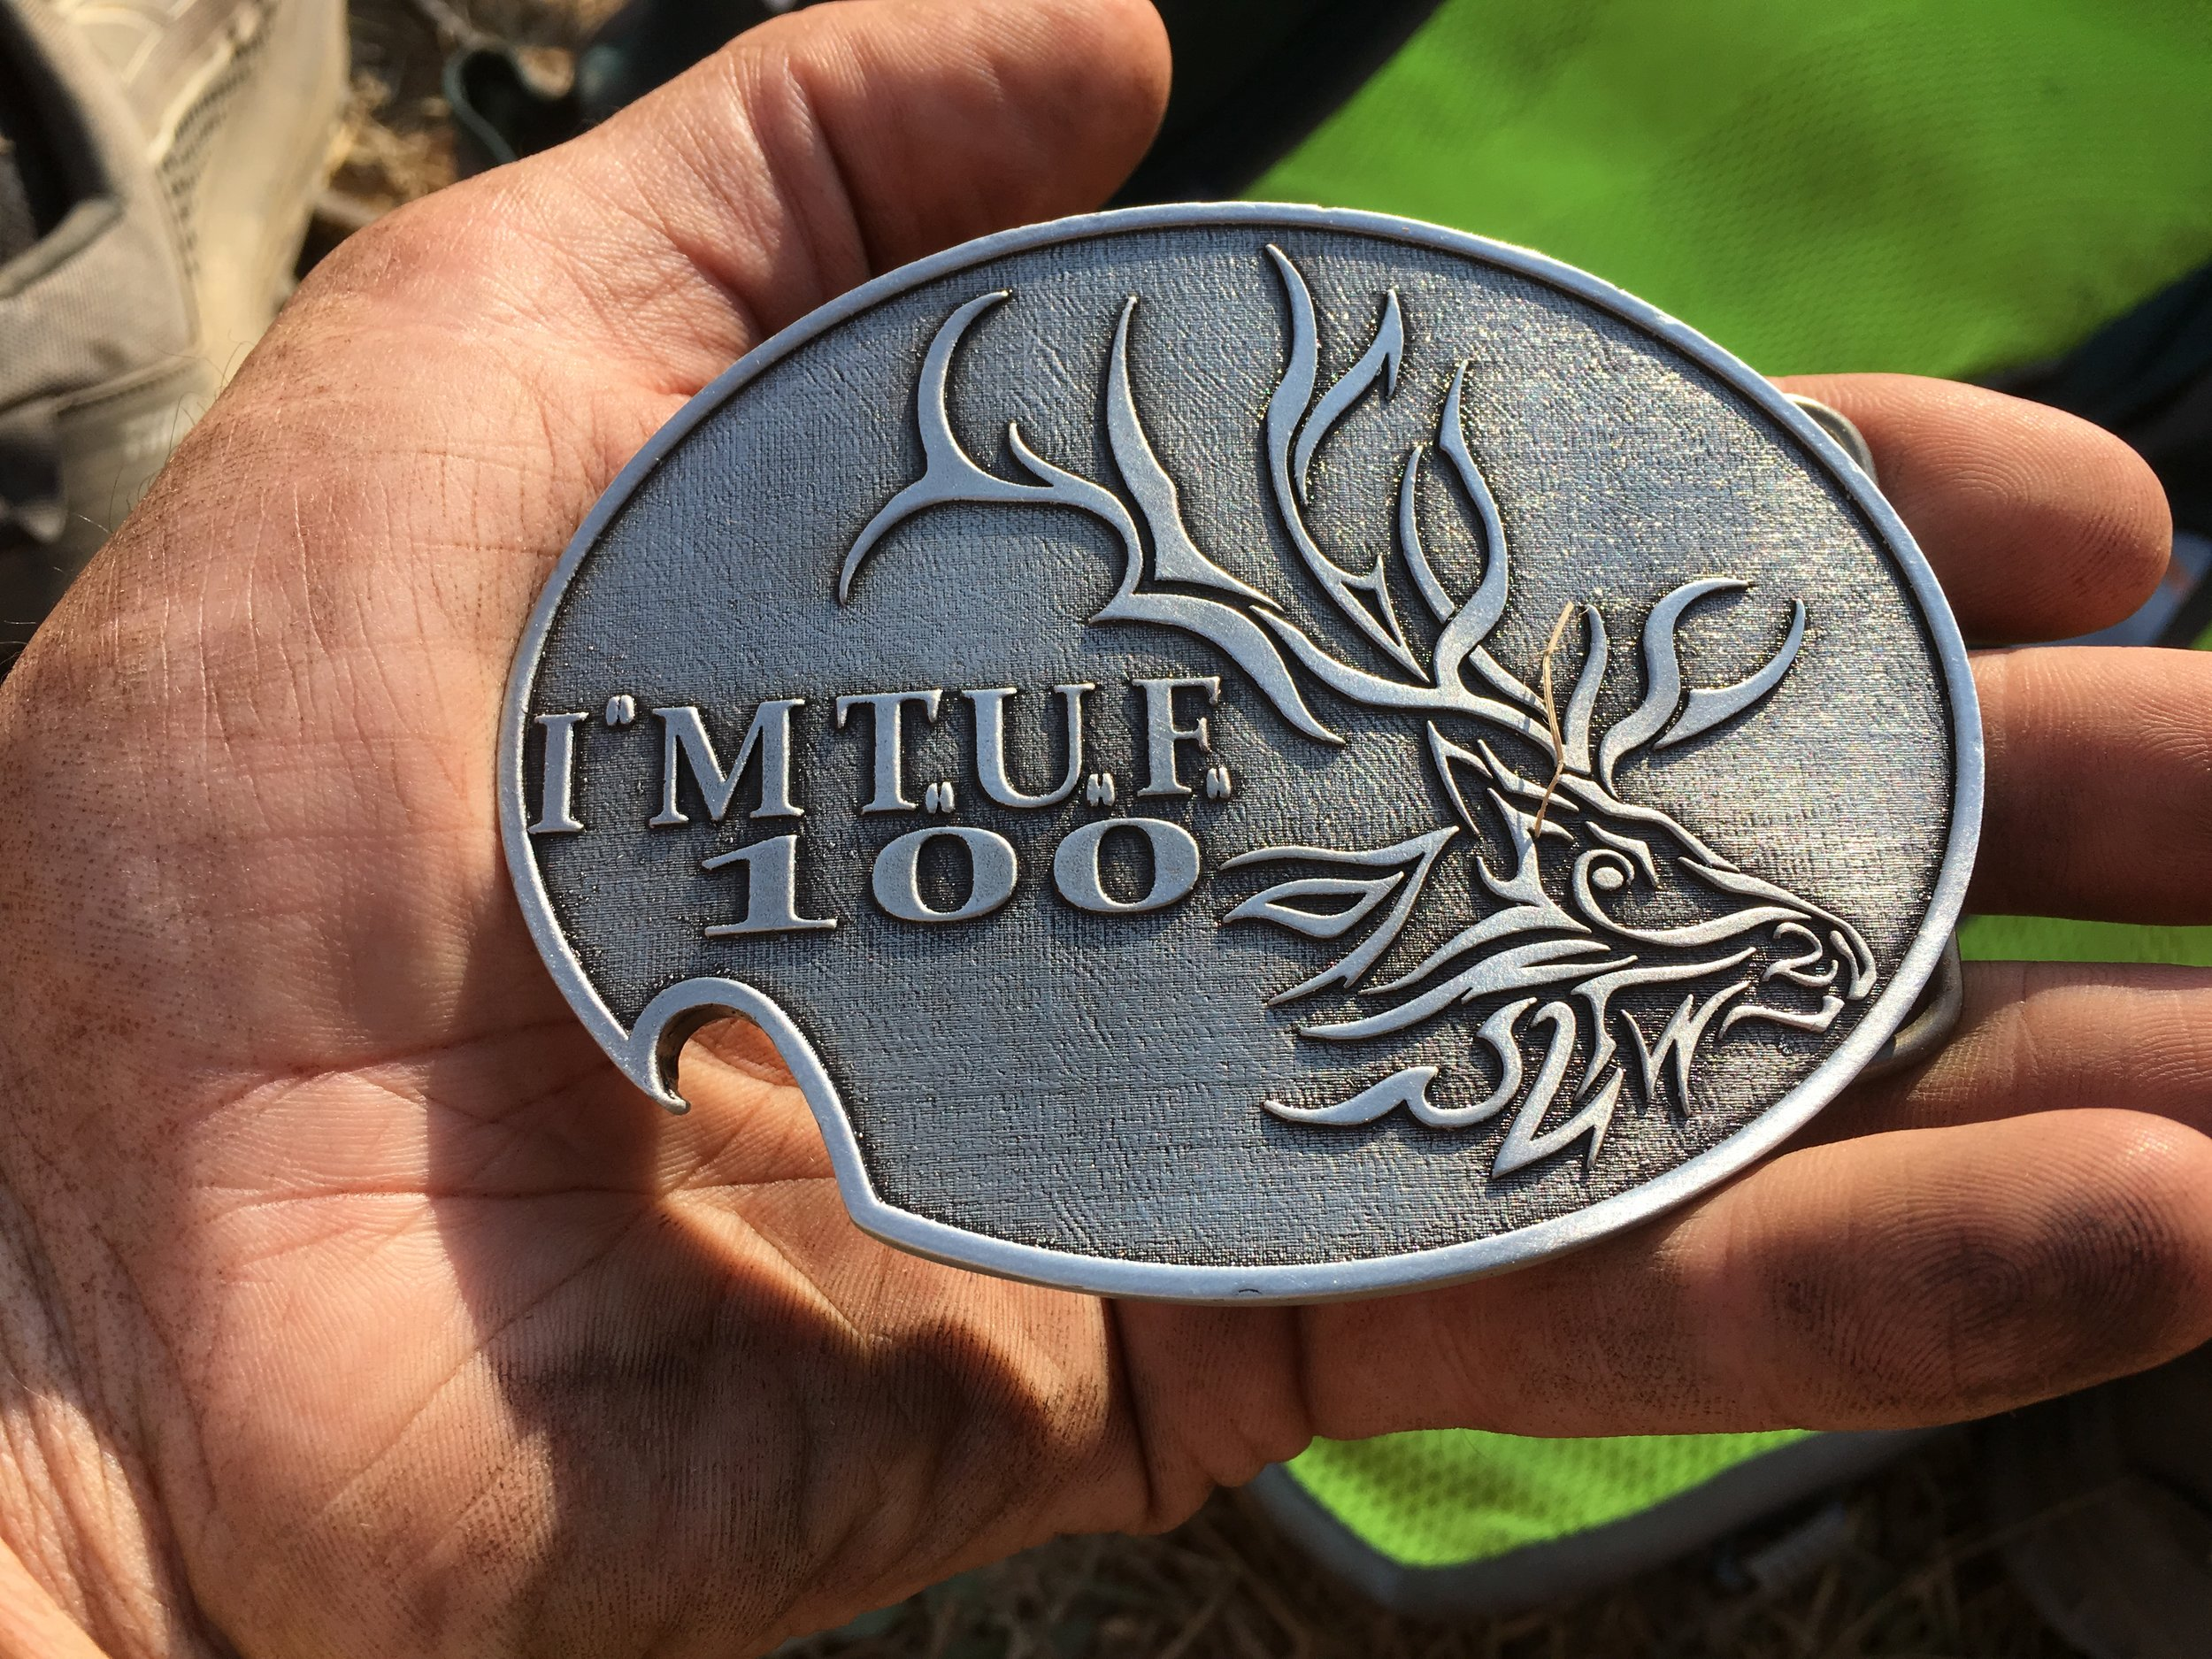 Nailed it! This was my first finish of IMTUF and my fifth 100-mile buckle. Notice the intentional notch that is perfect for popping bottle caps to toast a successful run.